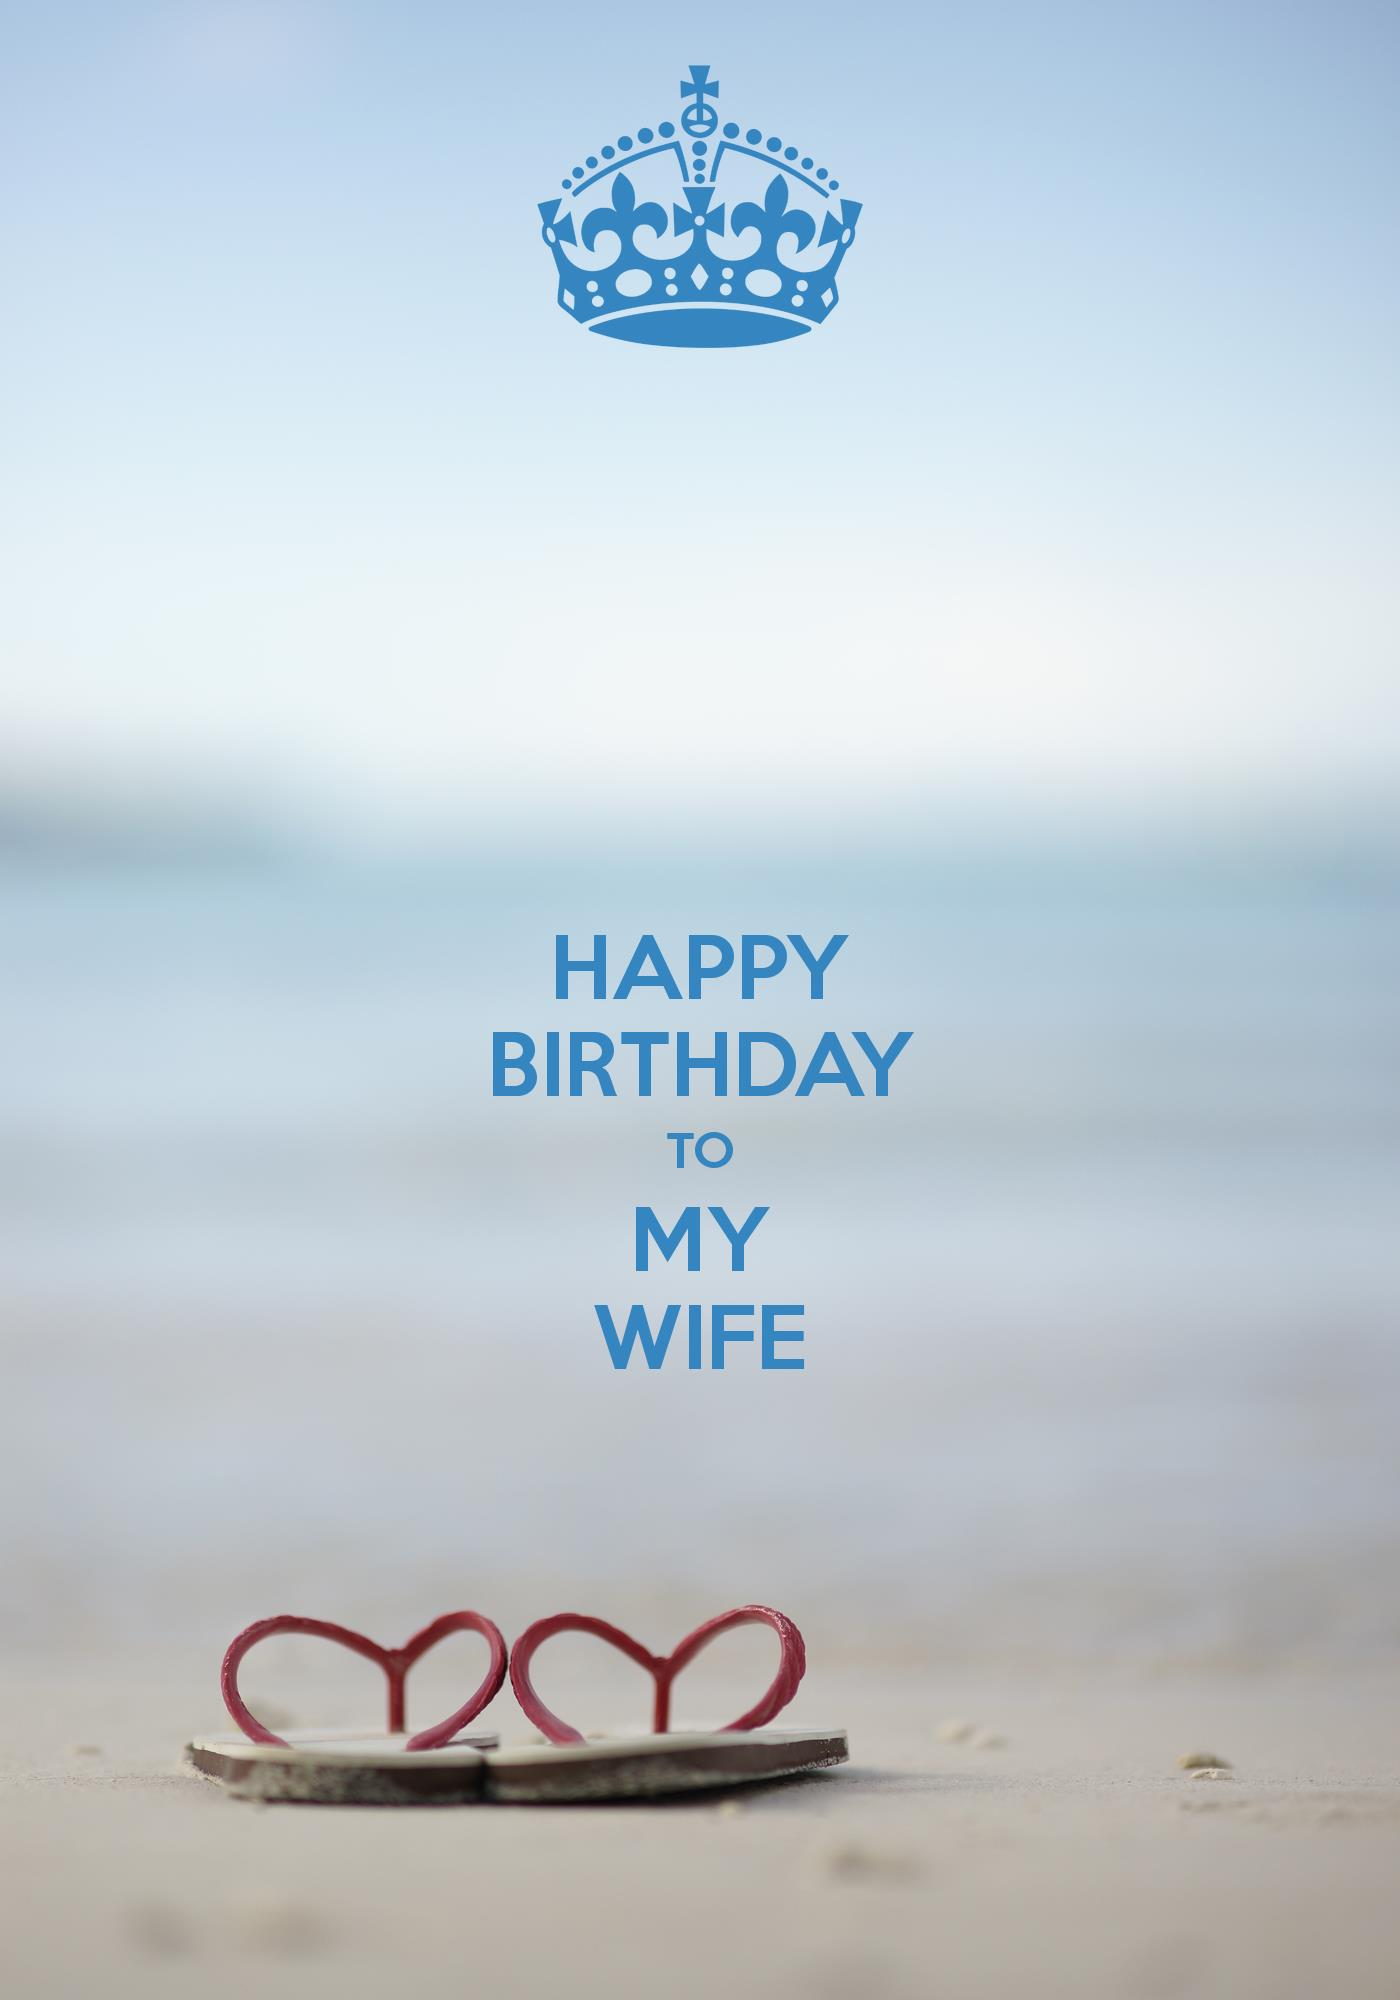 birthday wallpaper for wife ; Happy-Birthday-To-My-Wife-Wallpaper1